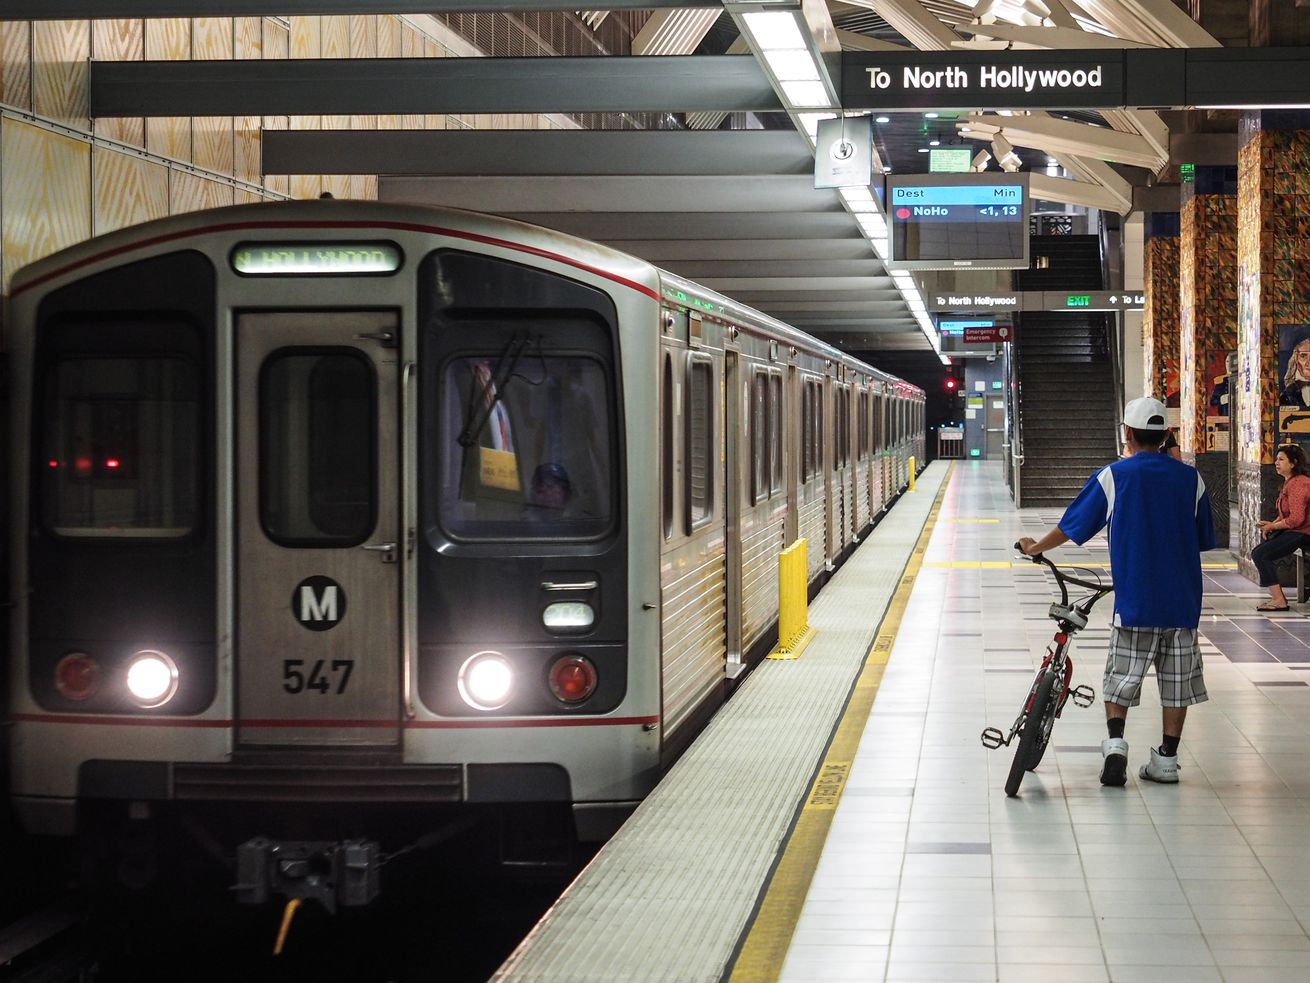 Riders took about 1.5 million fewer trips on Metro's Red Line in 2018 than they did in 2017.